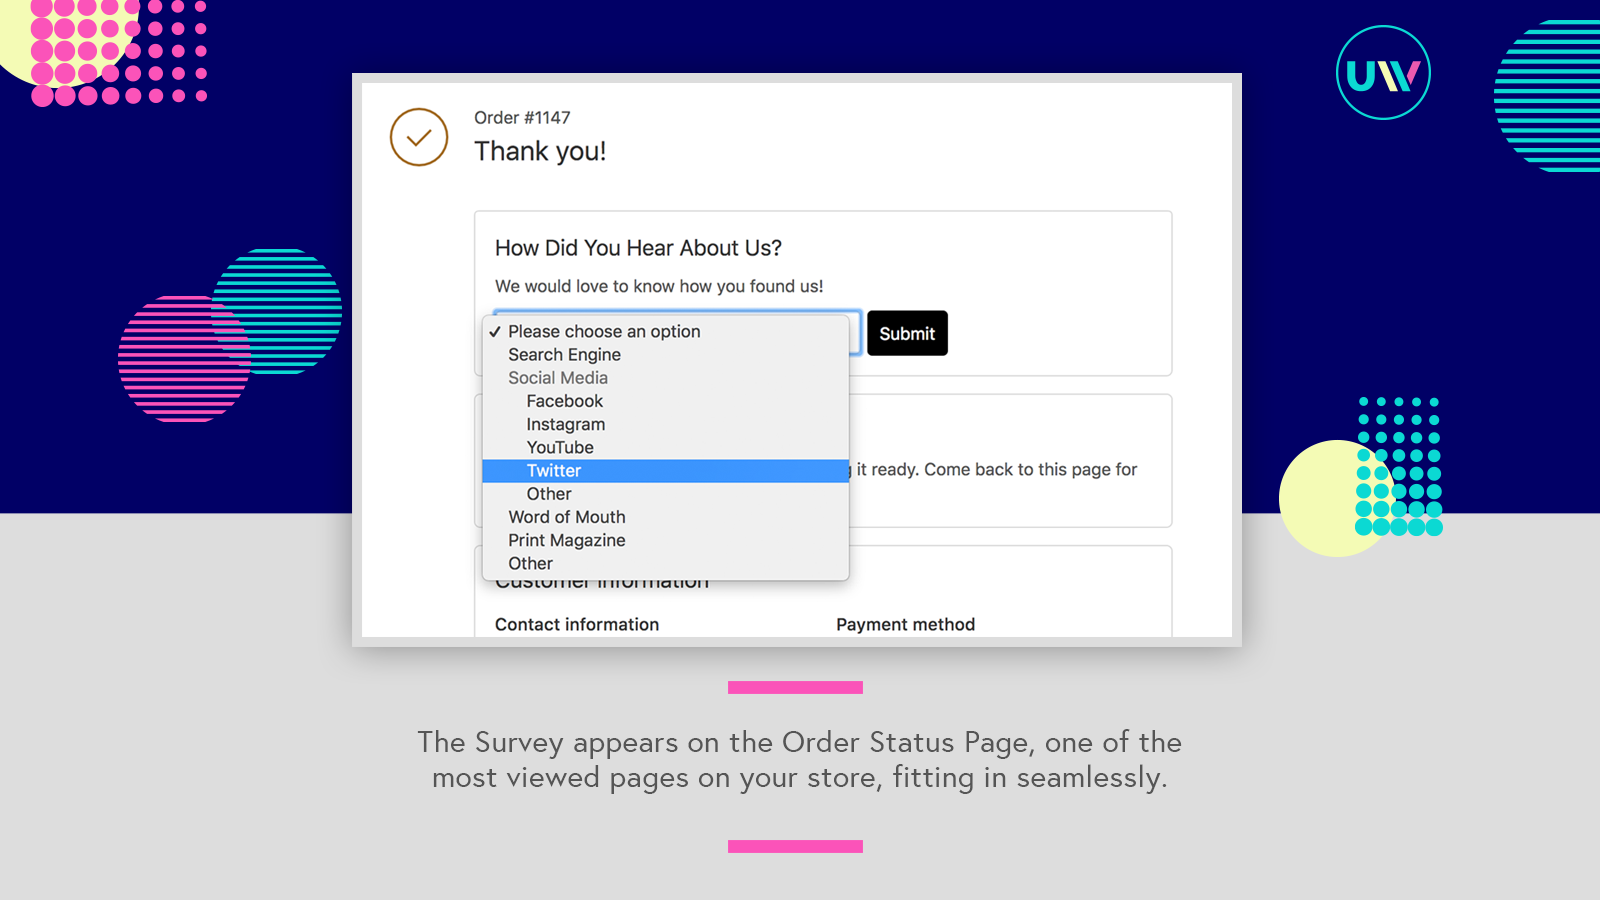 The Survey widget on the Order Status Page